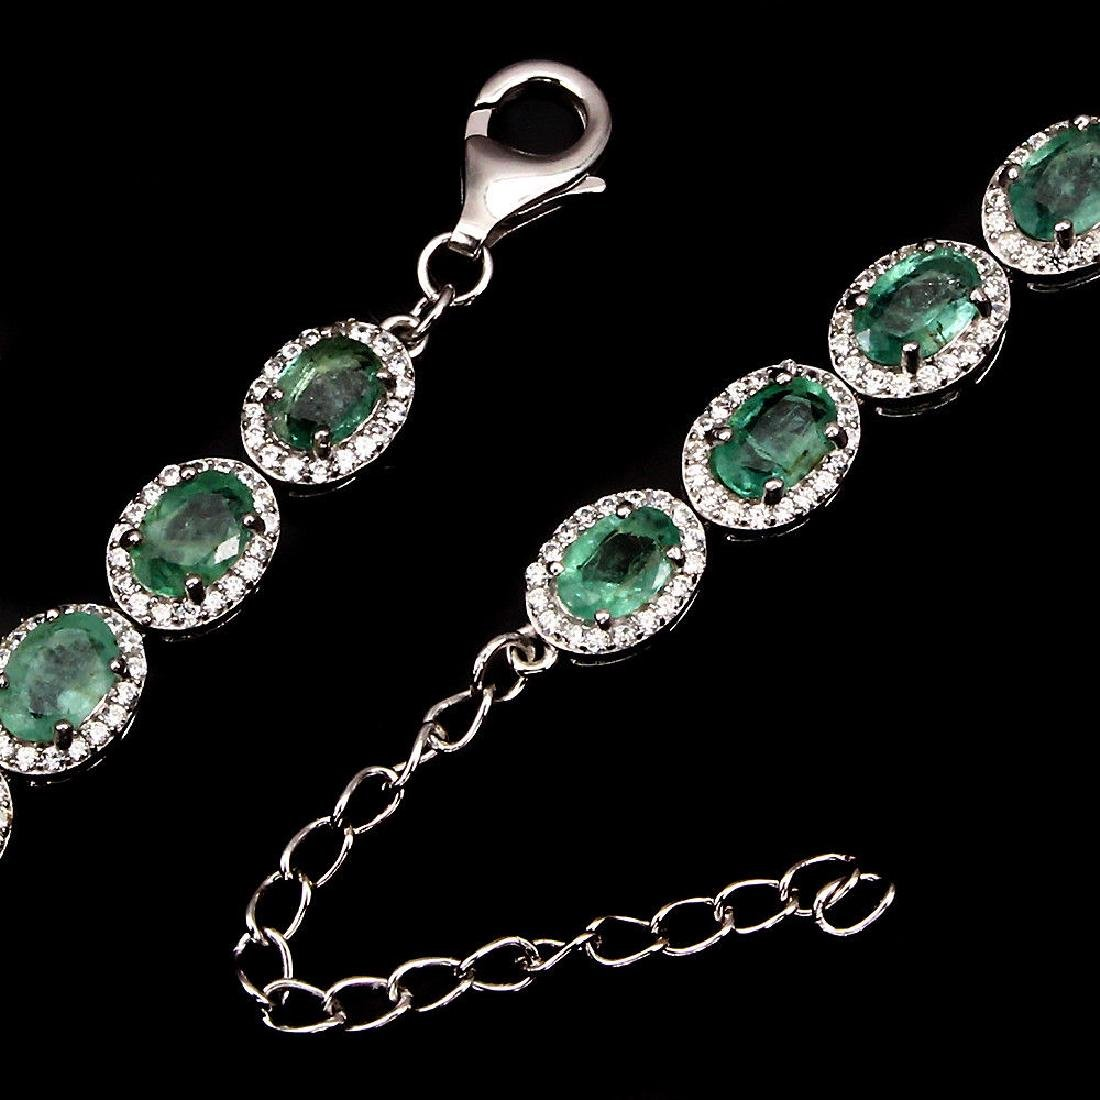 Natural  Green Emerald 56.43 Cts Bracelet - 3